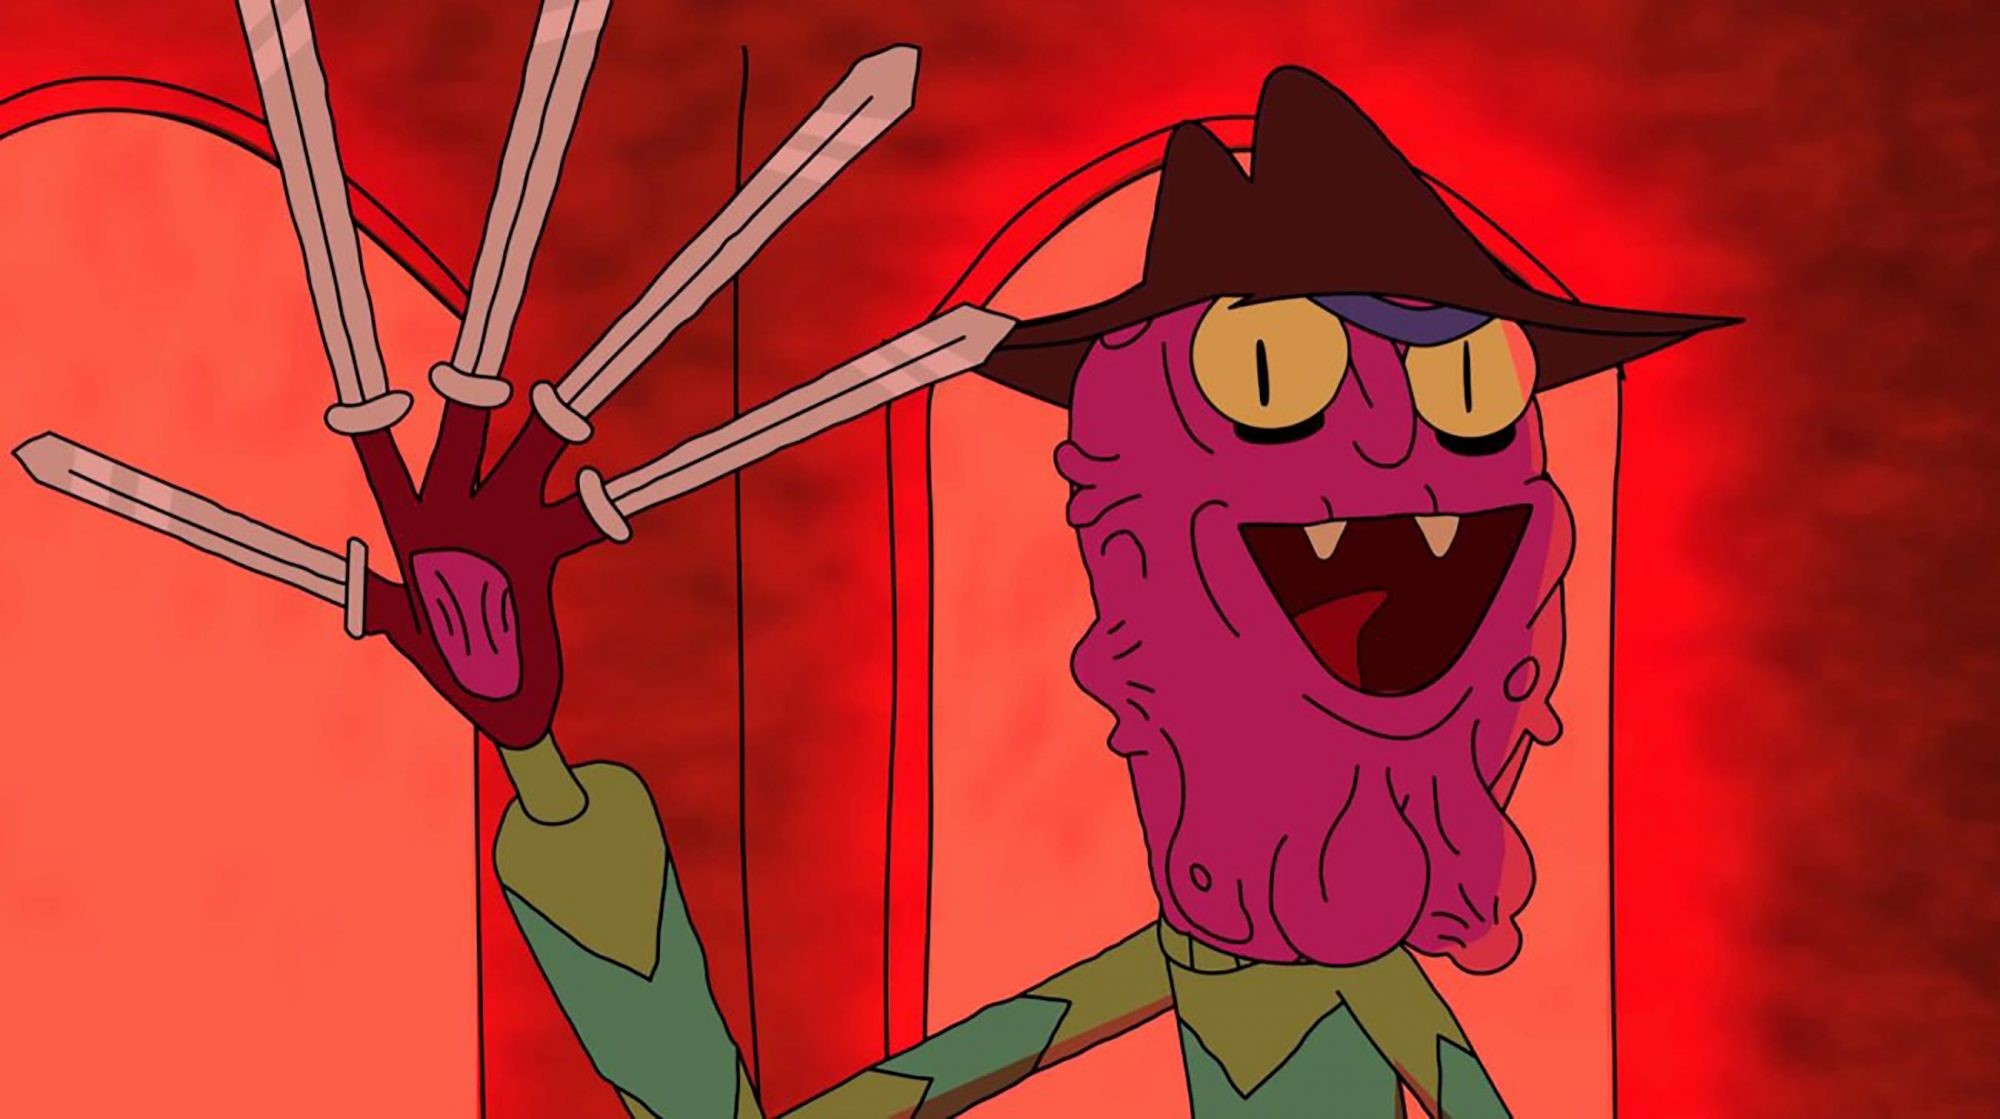 Ricky and Morty - Scary Terry (Season 1, Episode 2)